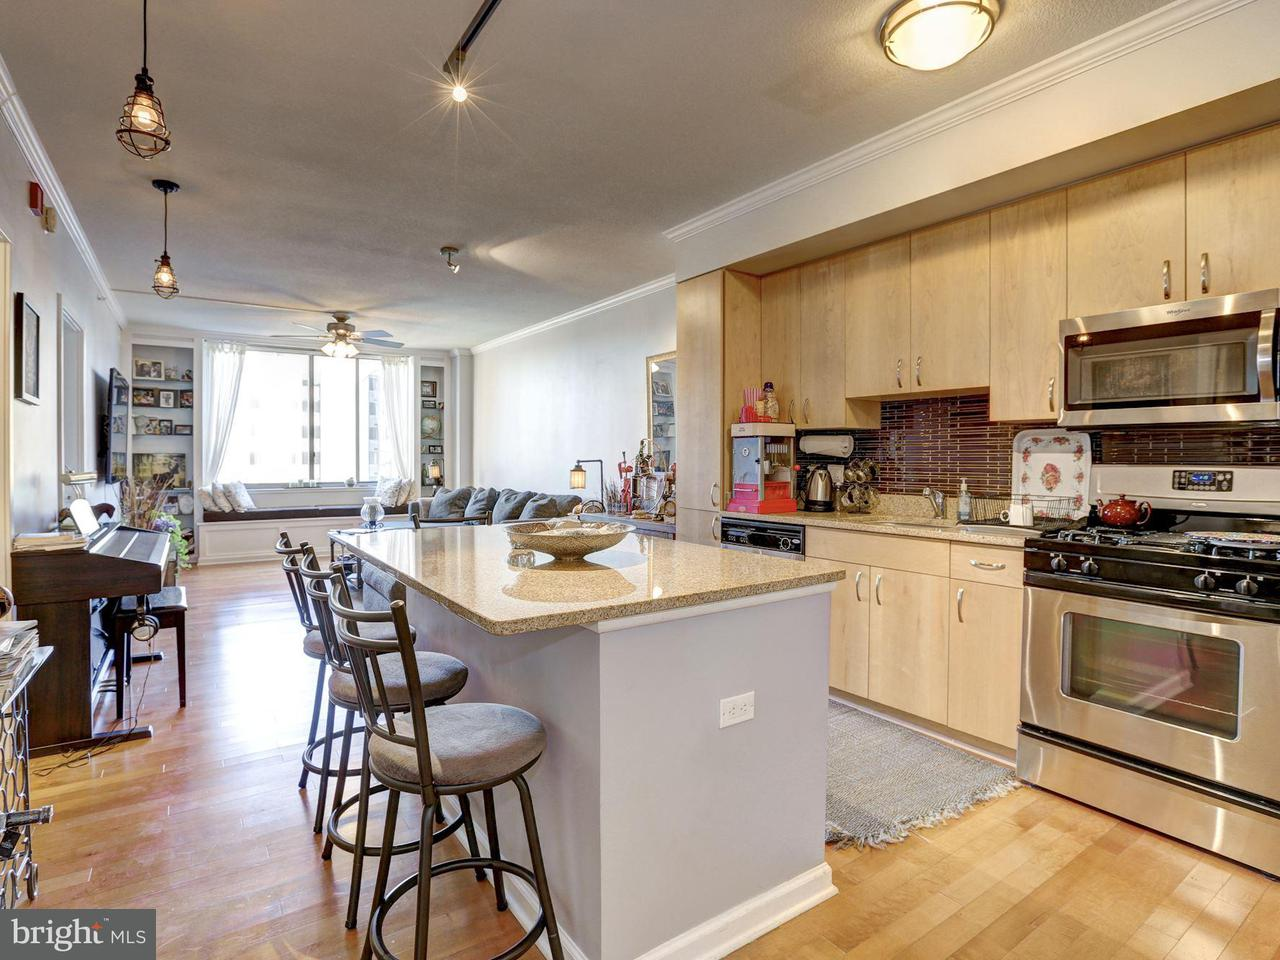 Condominium for Rent at 440 L St NW #612 Washington, District Of Columbia 20001 United States